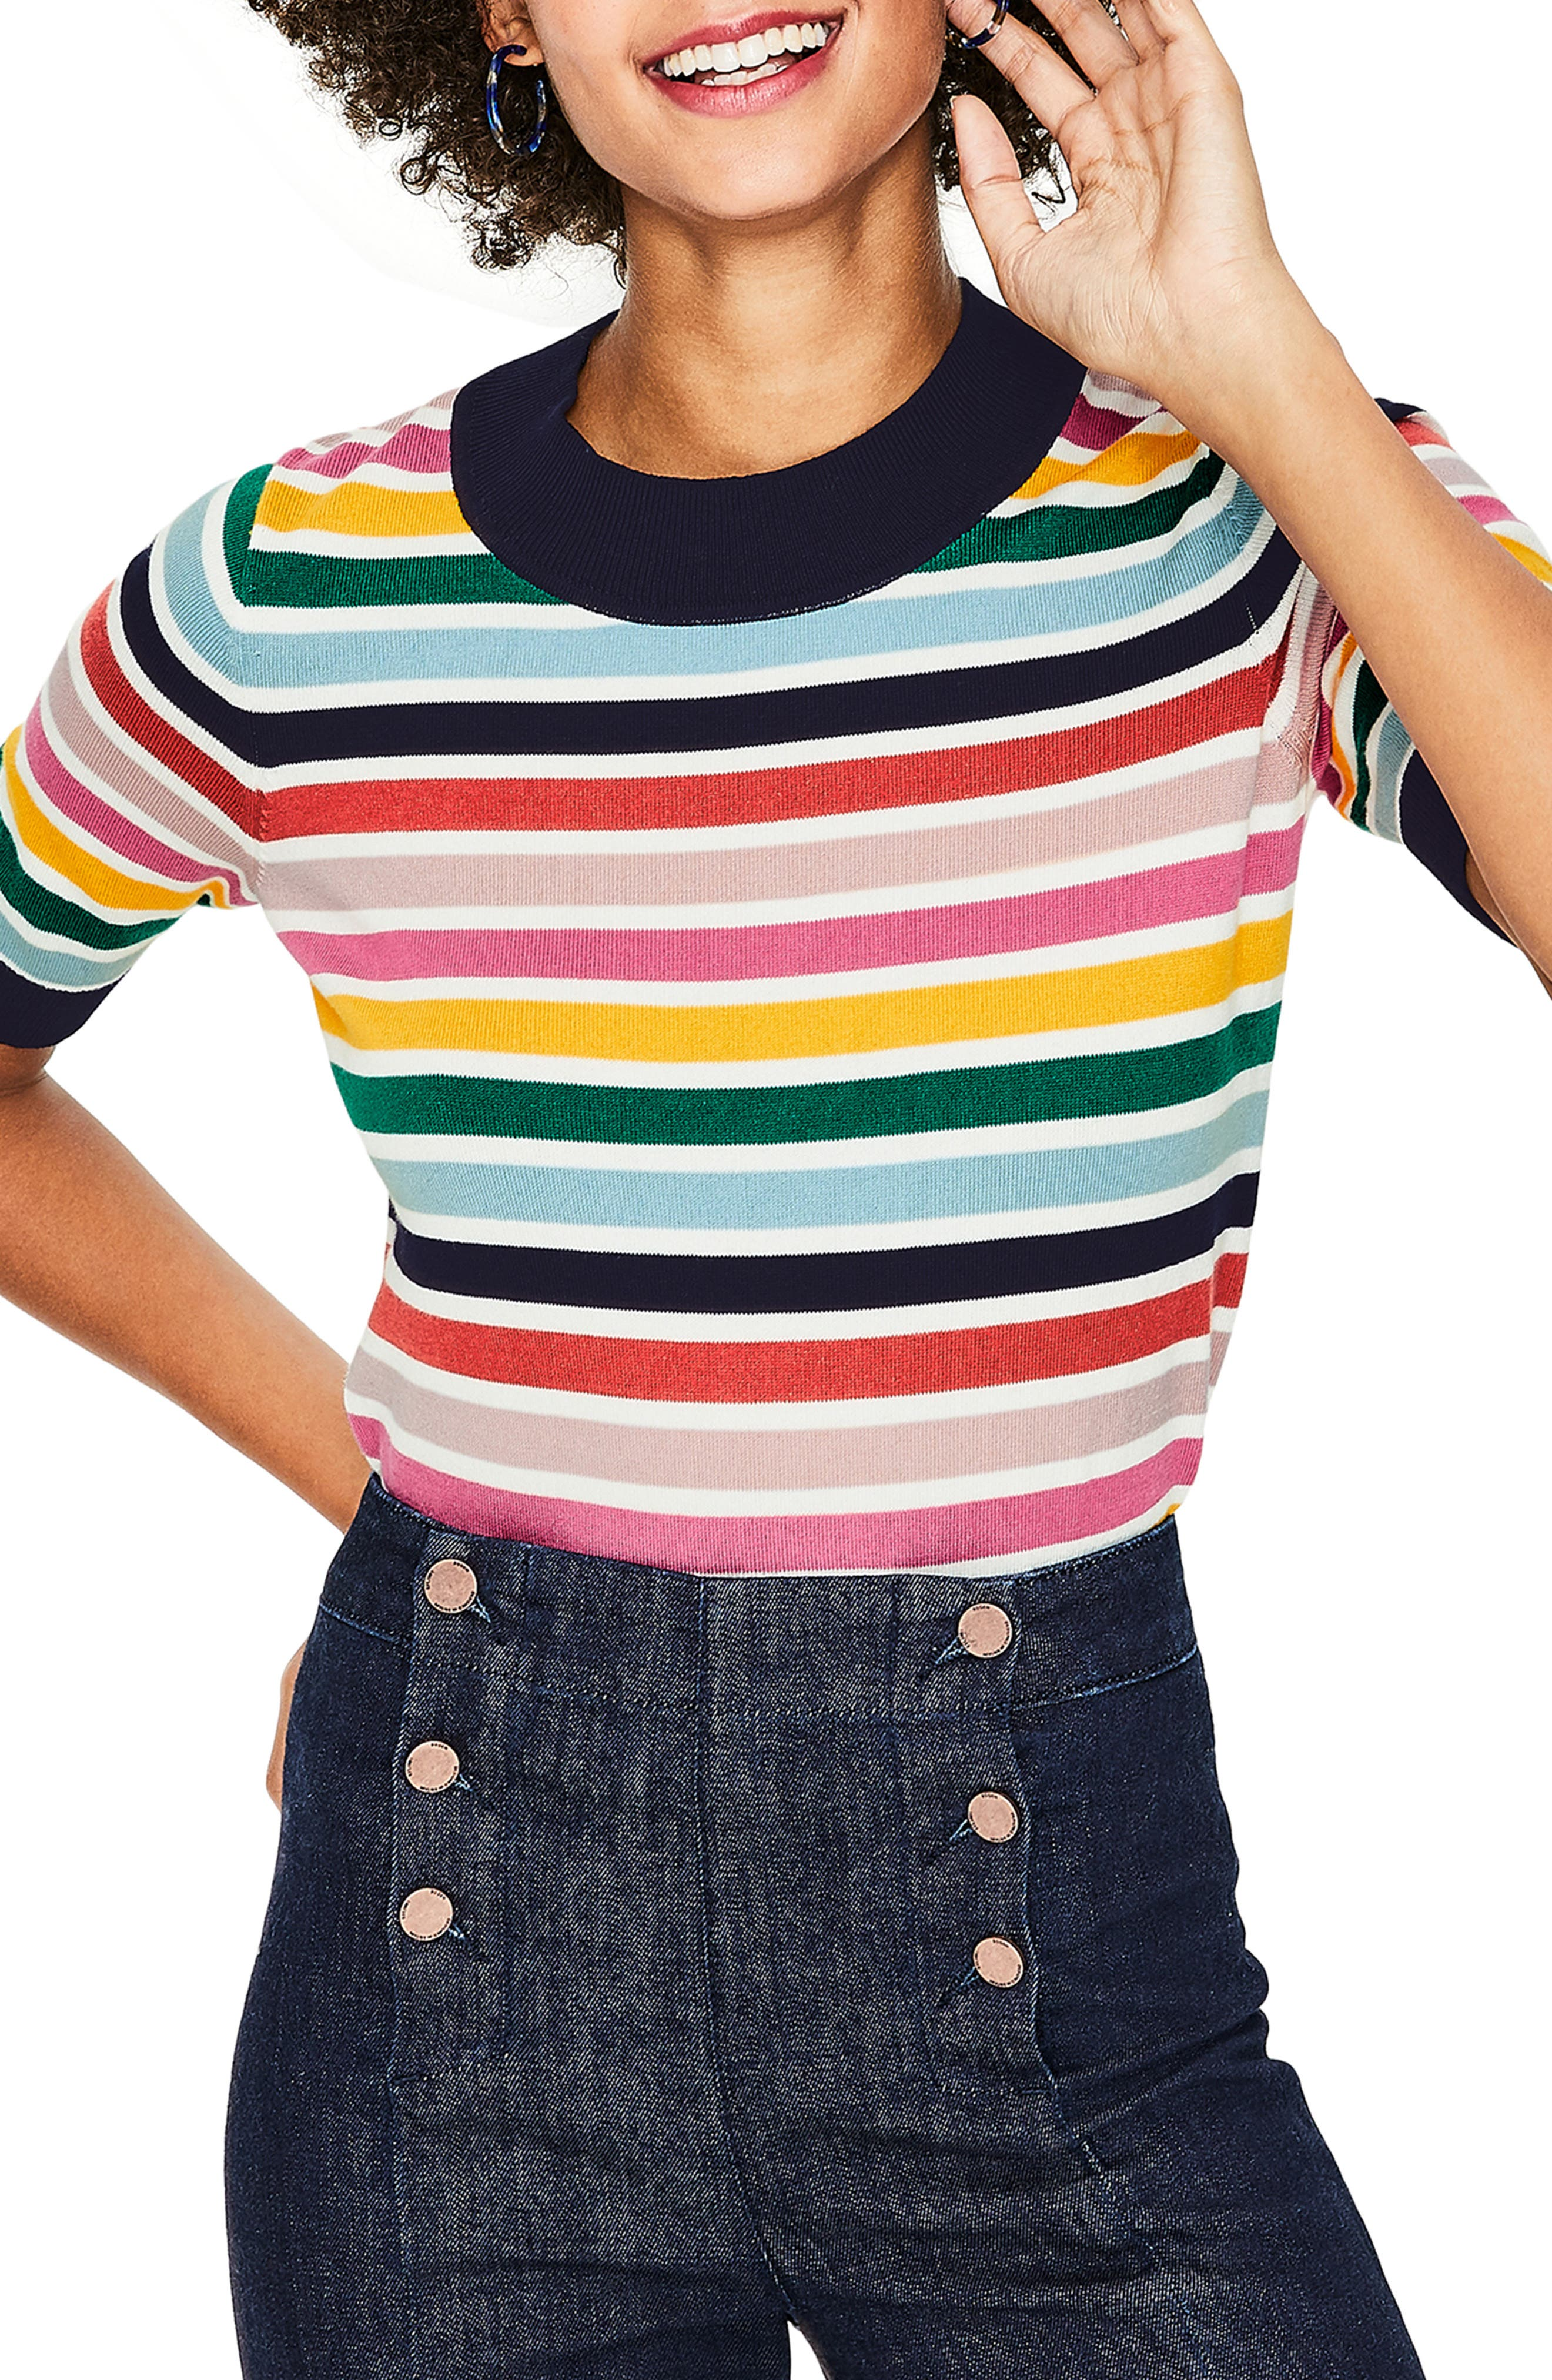 BODEN, Multicolor Knit Tee, Main thumbnail 1, color, MULTI STRIPE